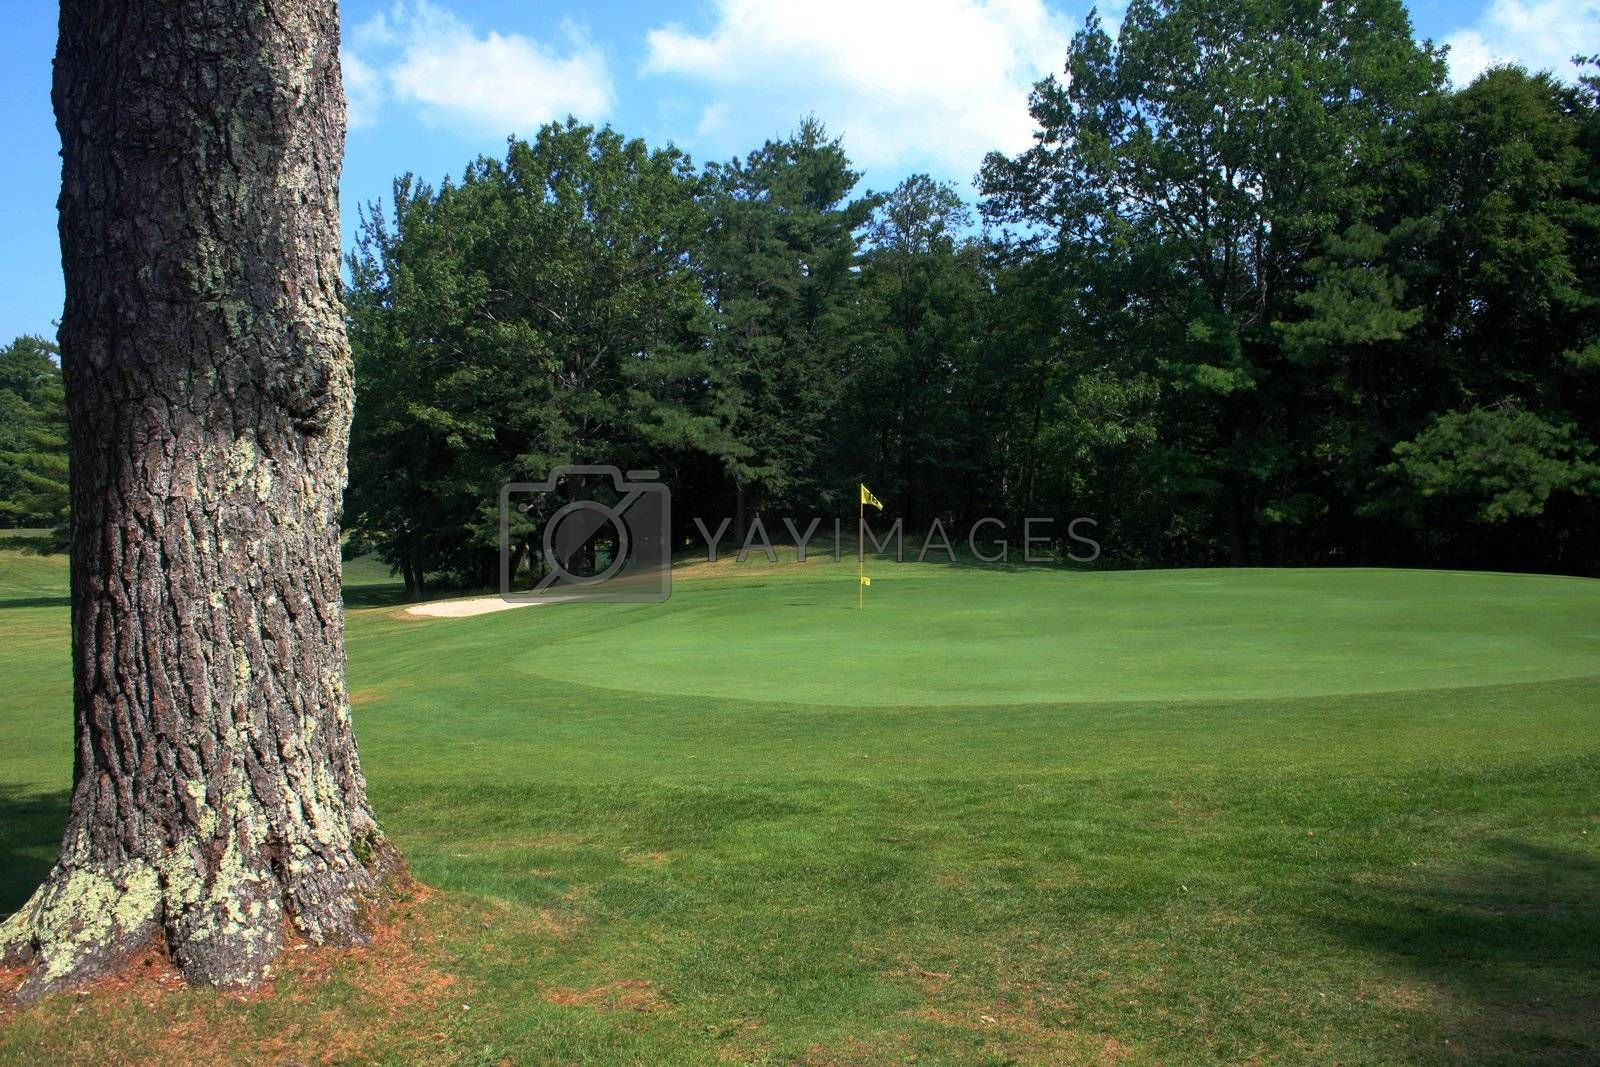 View of golf green with a large tree by it's side